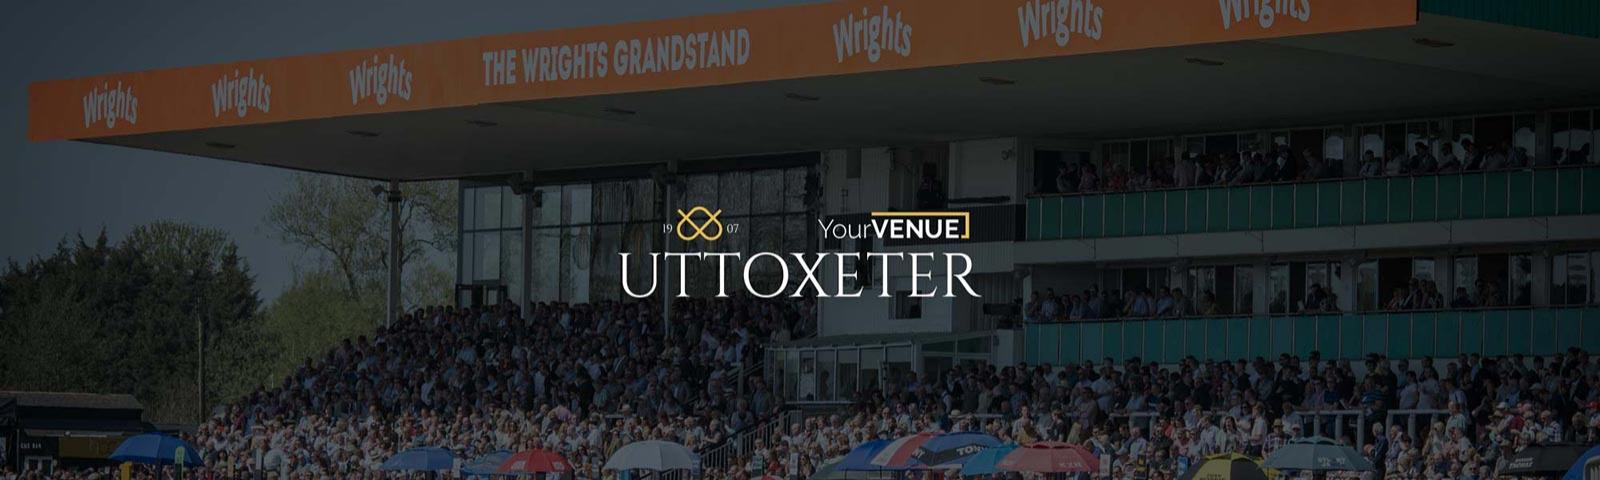 Wrights Grandstand at Uttoxeter Racecourse